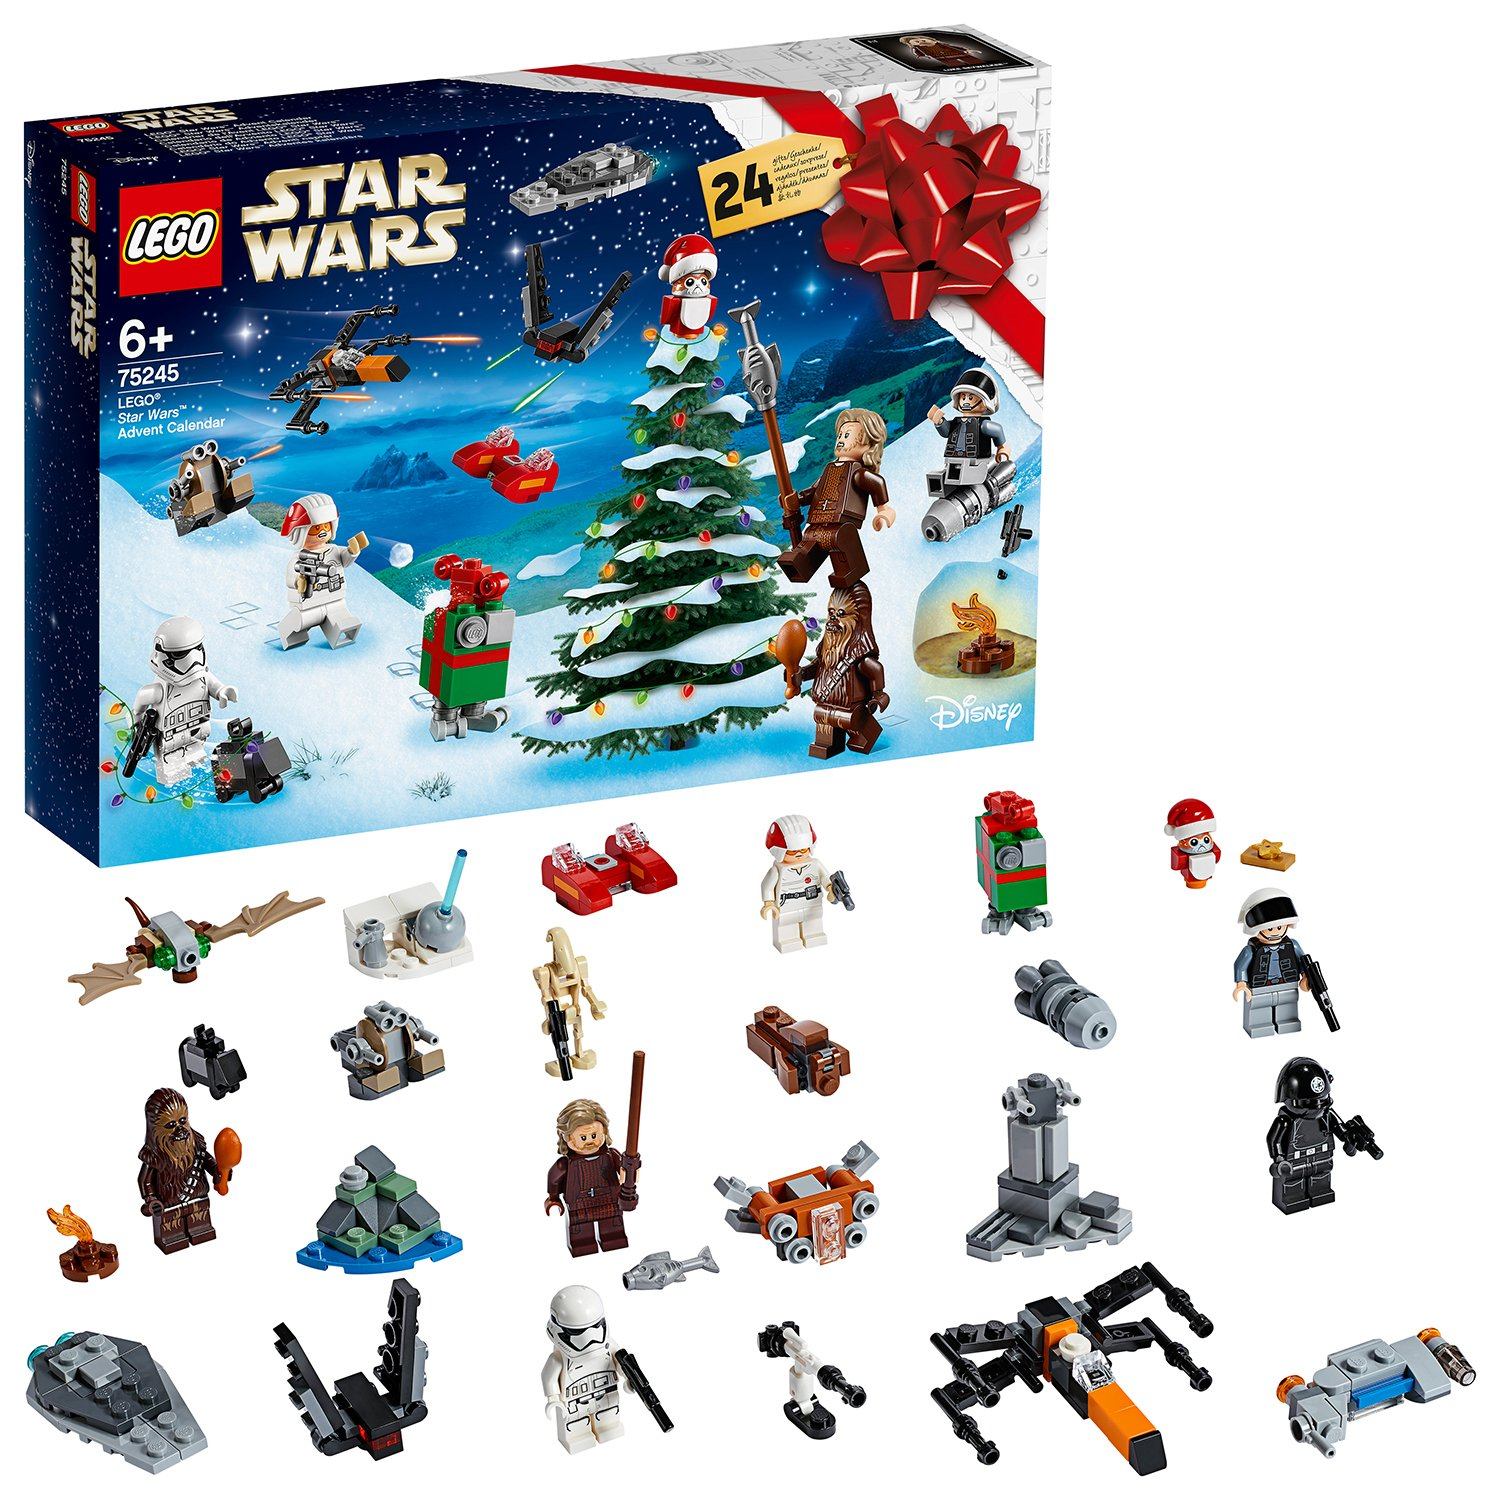 LEGO Star Wars Advent Calendar - 75245